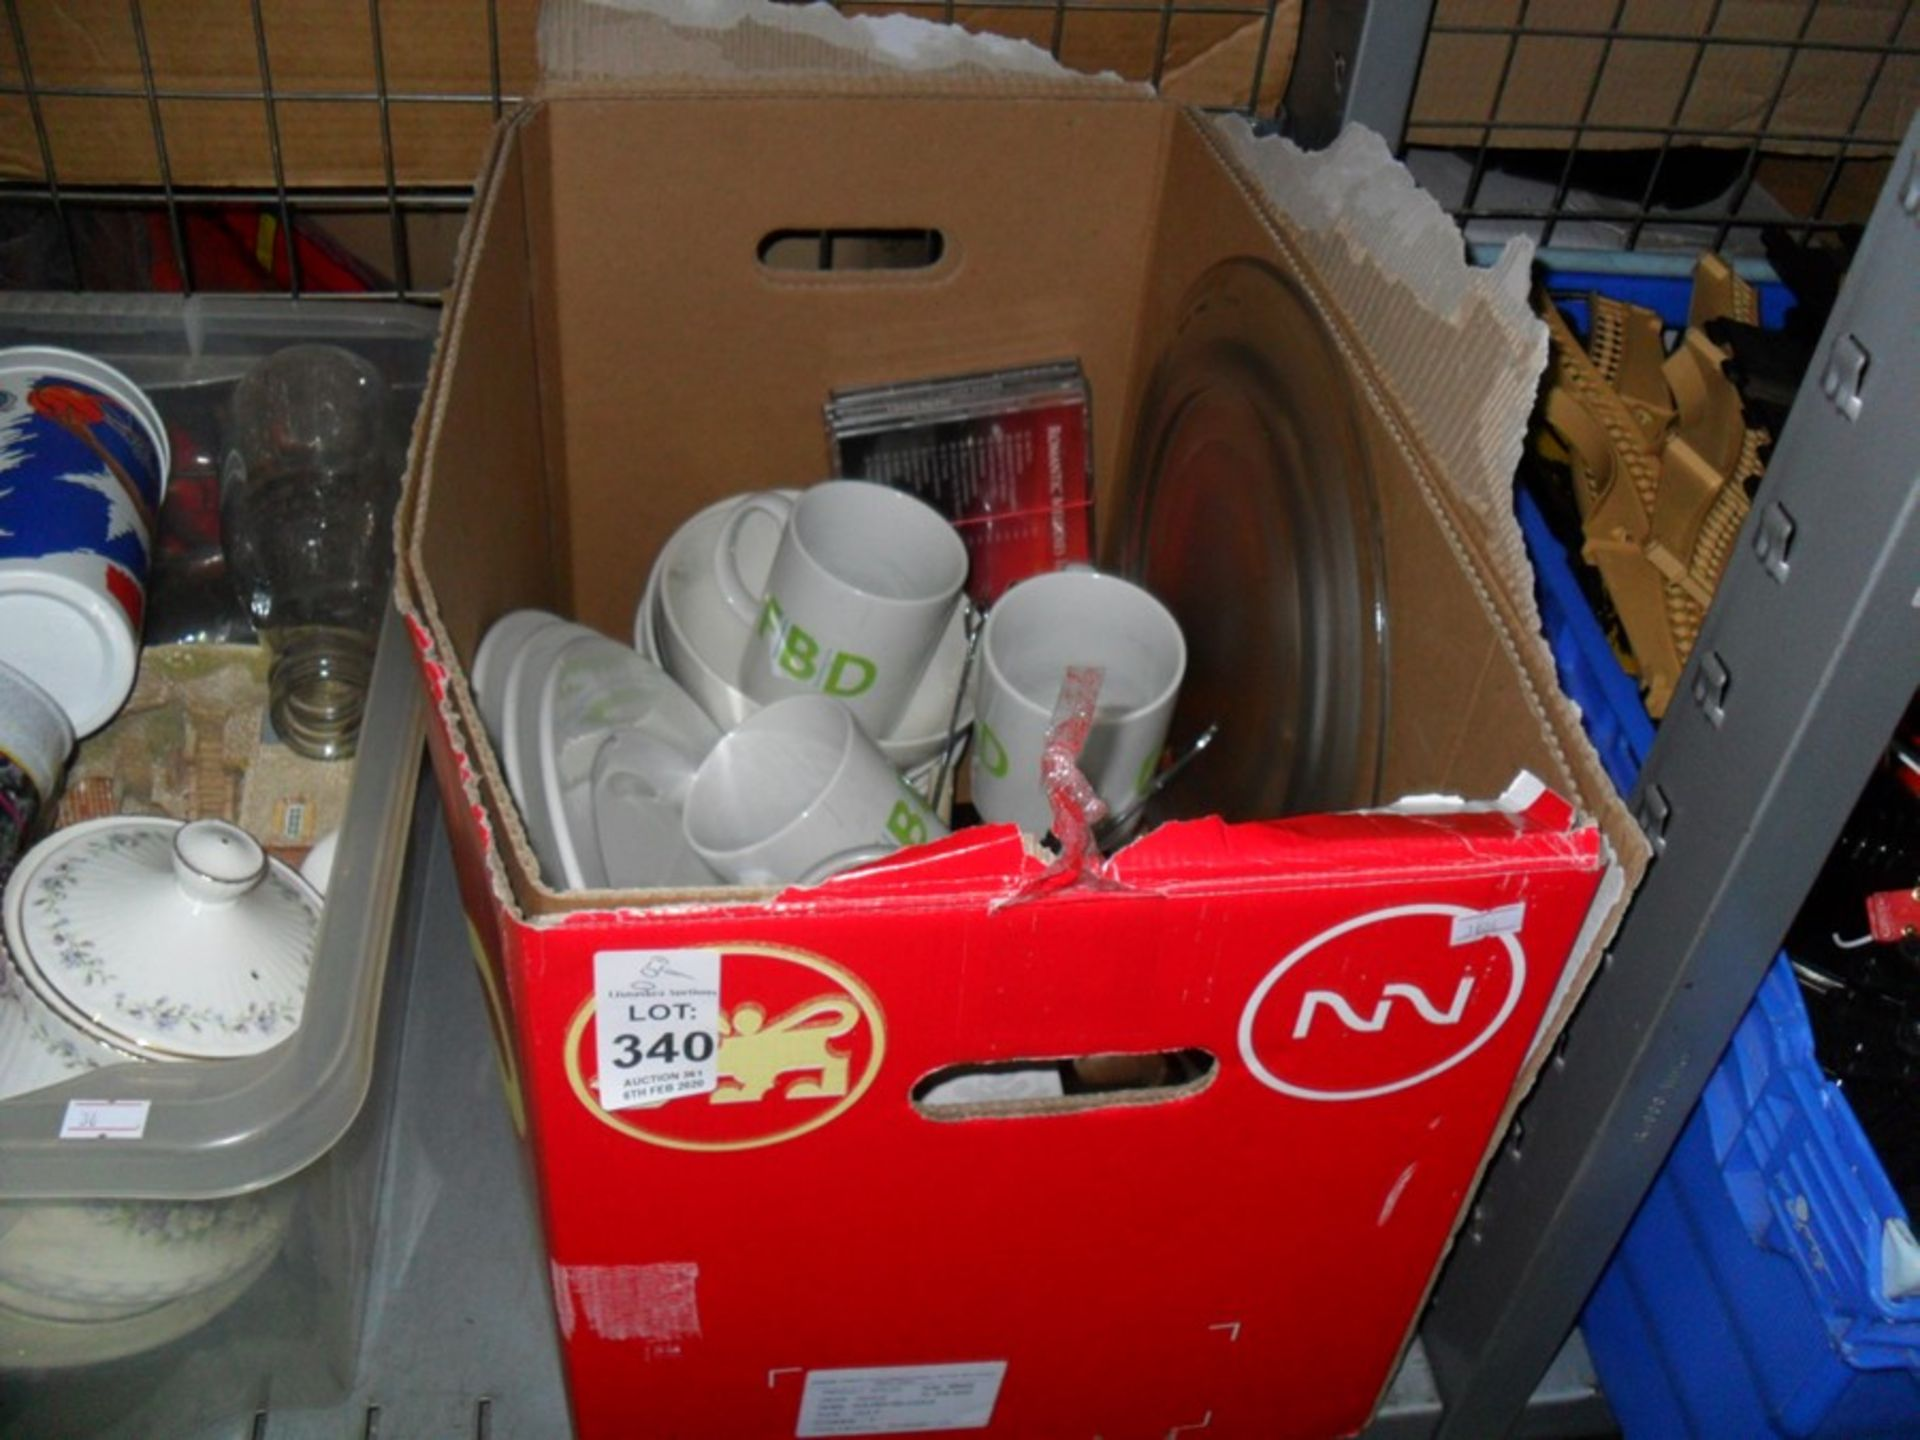 Lot 340 - BOX OF CLEAN KITCHEN CONTENTS